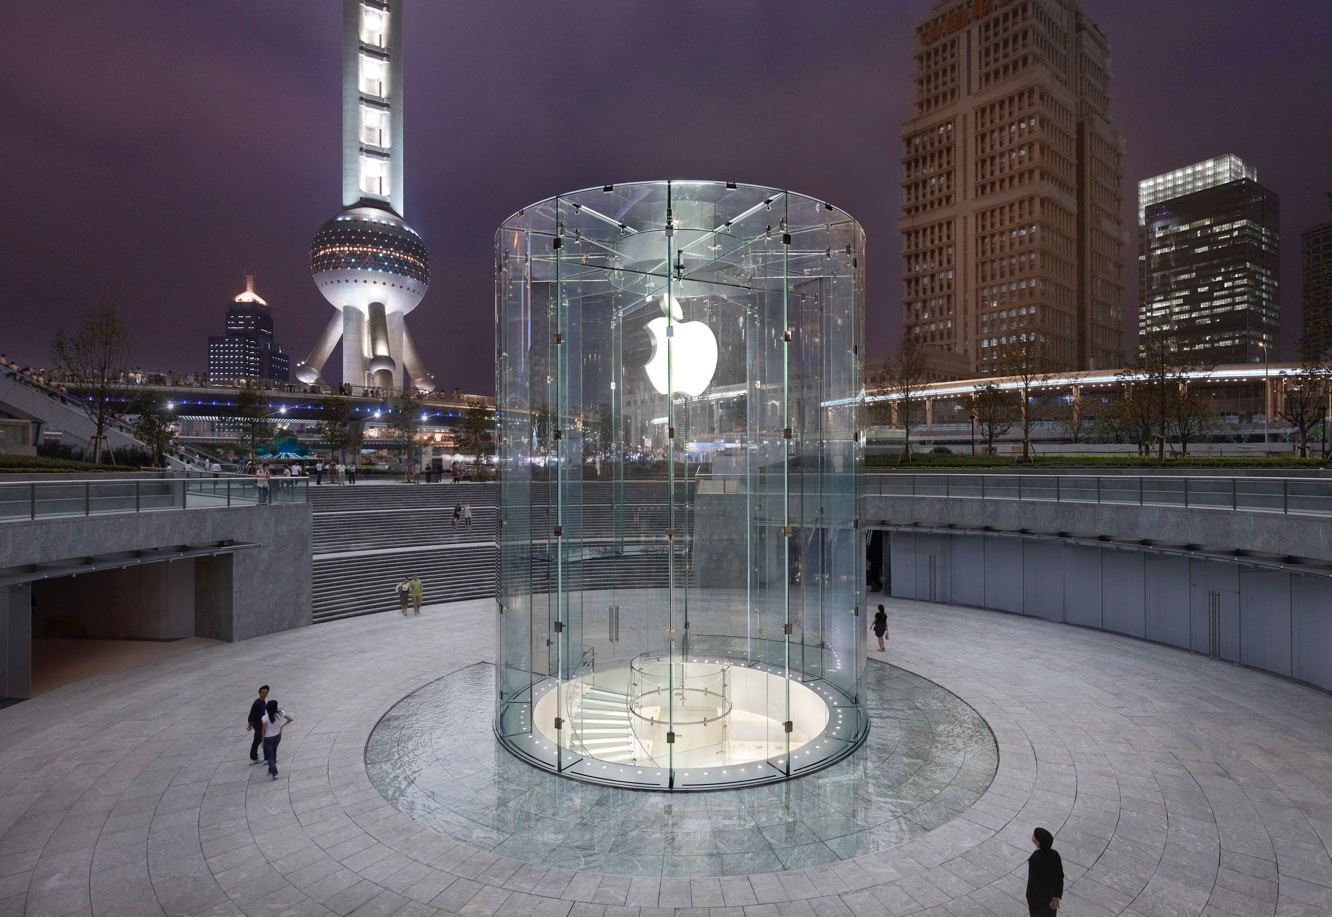 Apple's reputation falling behind in China